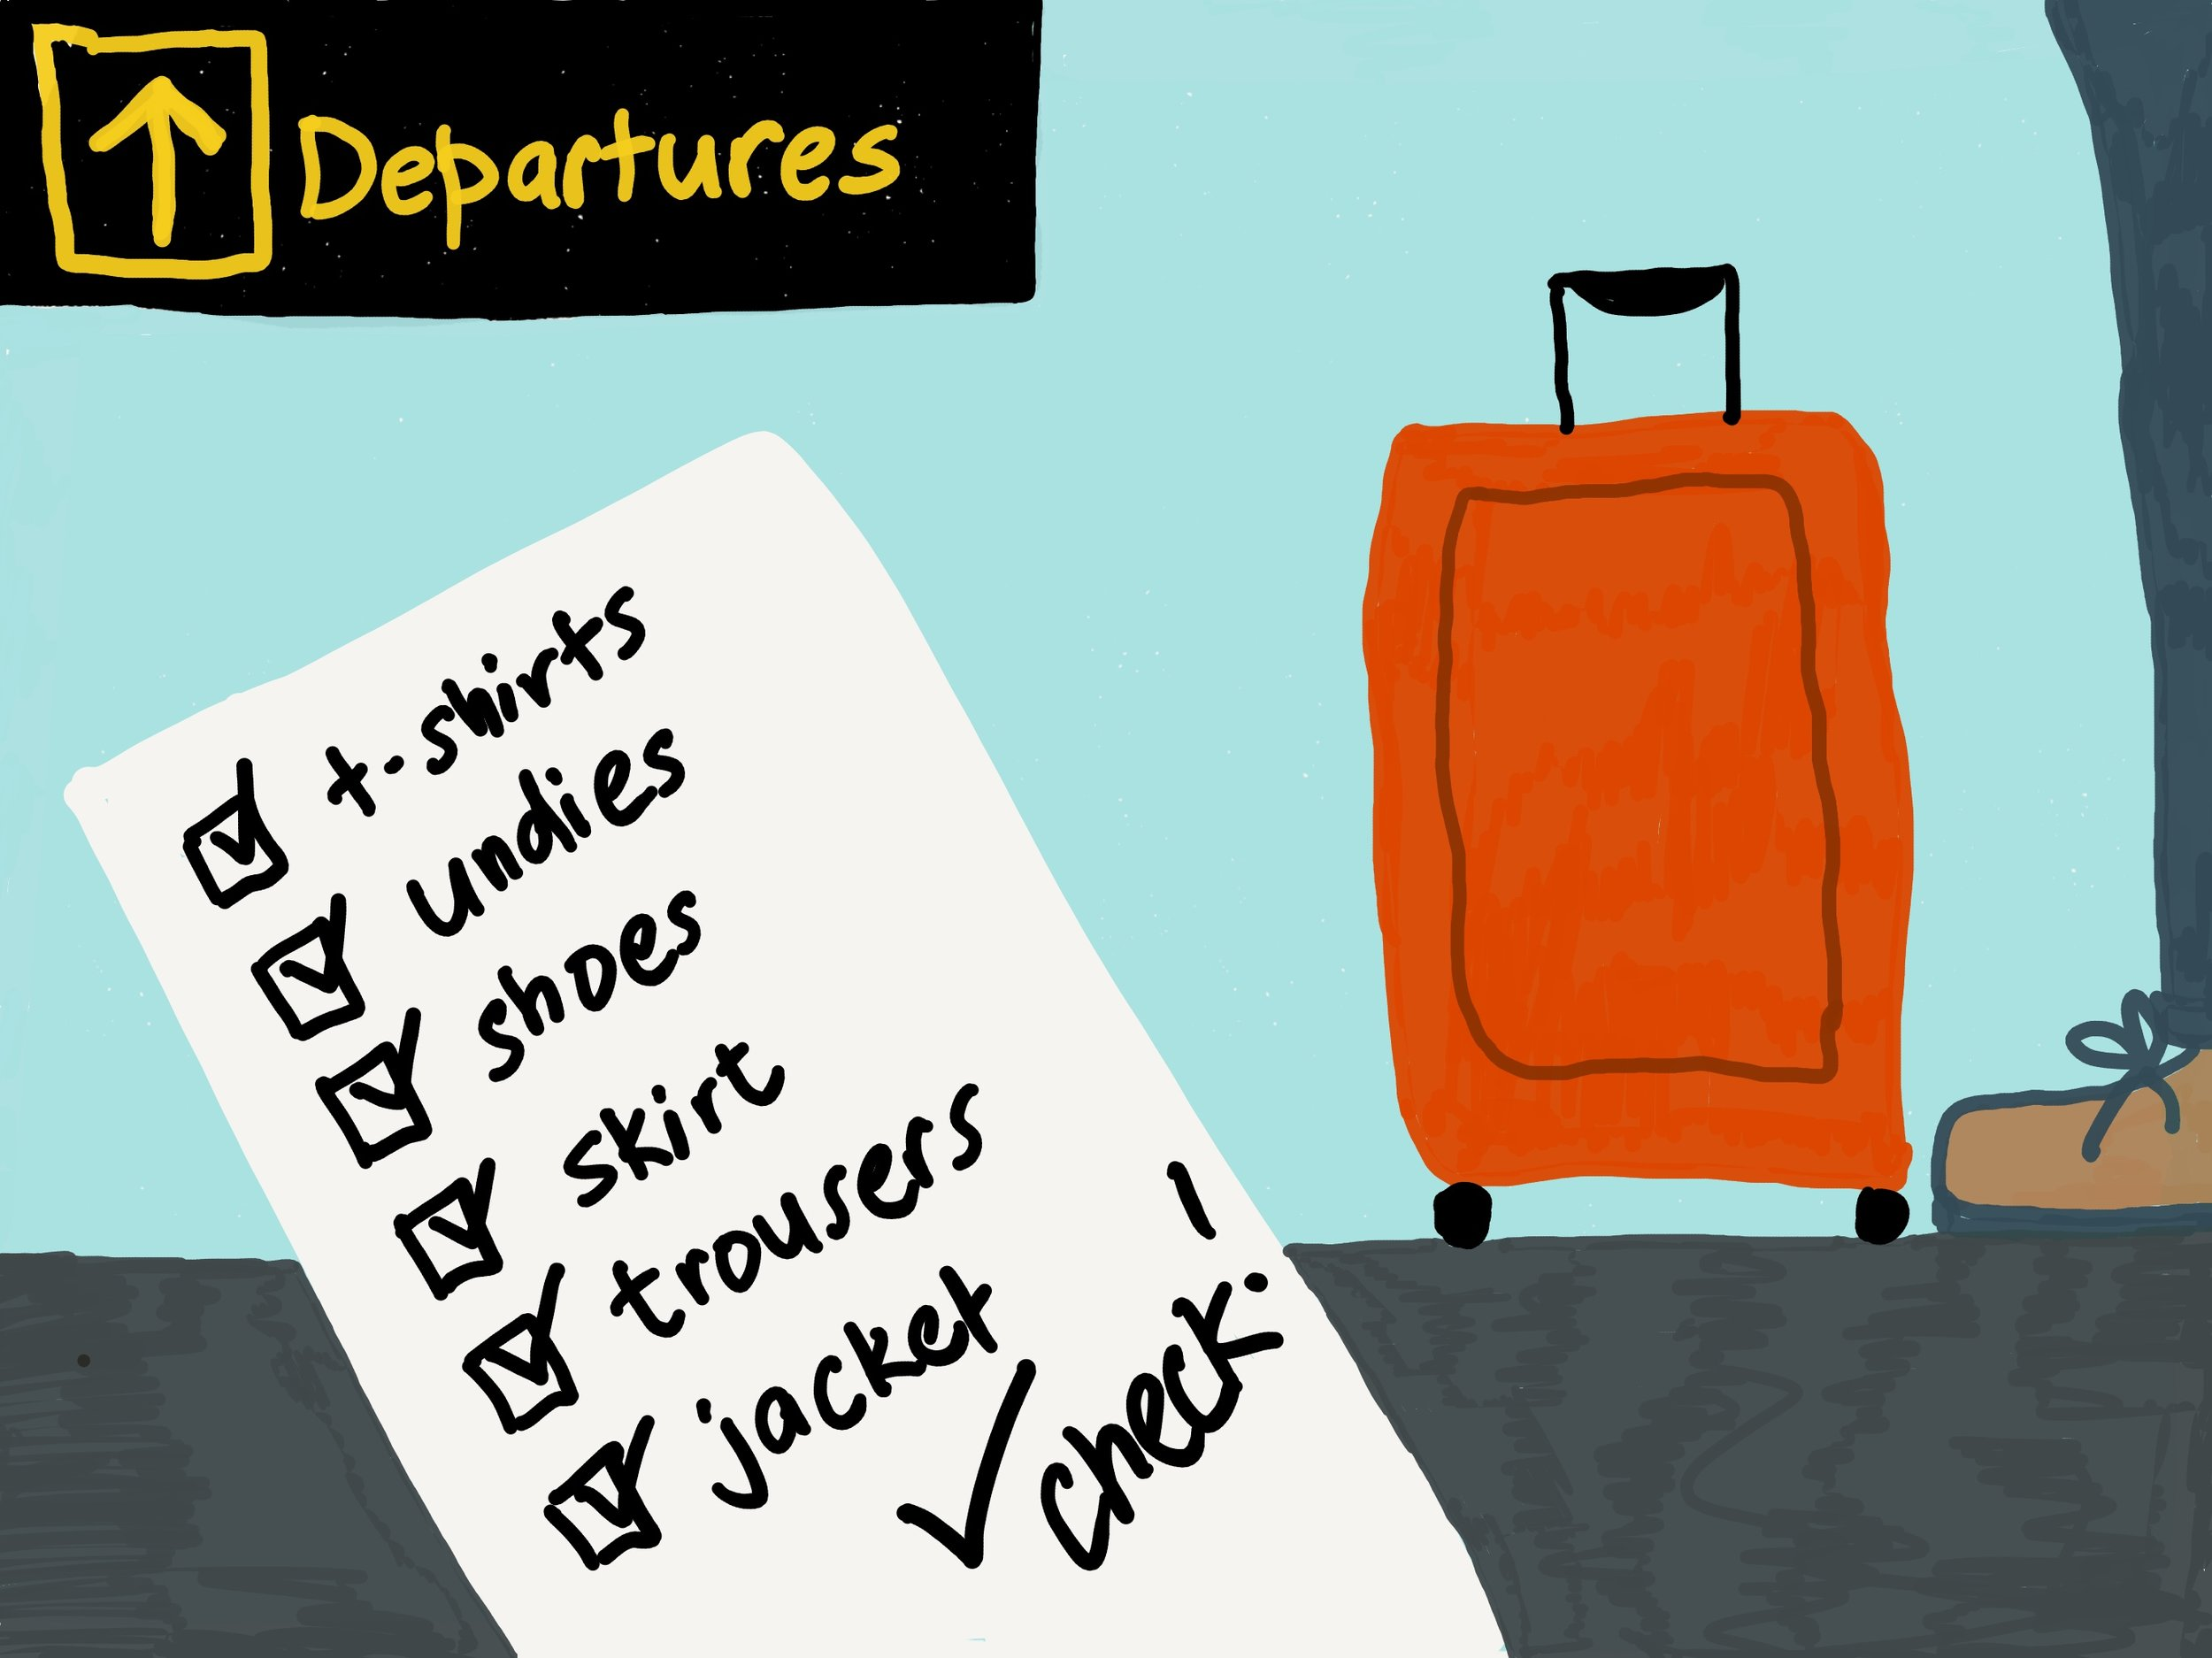 Travel light - packing guides